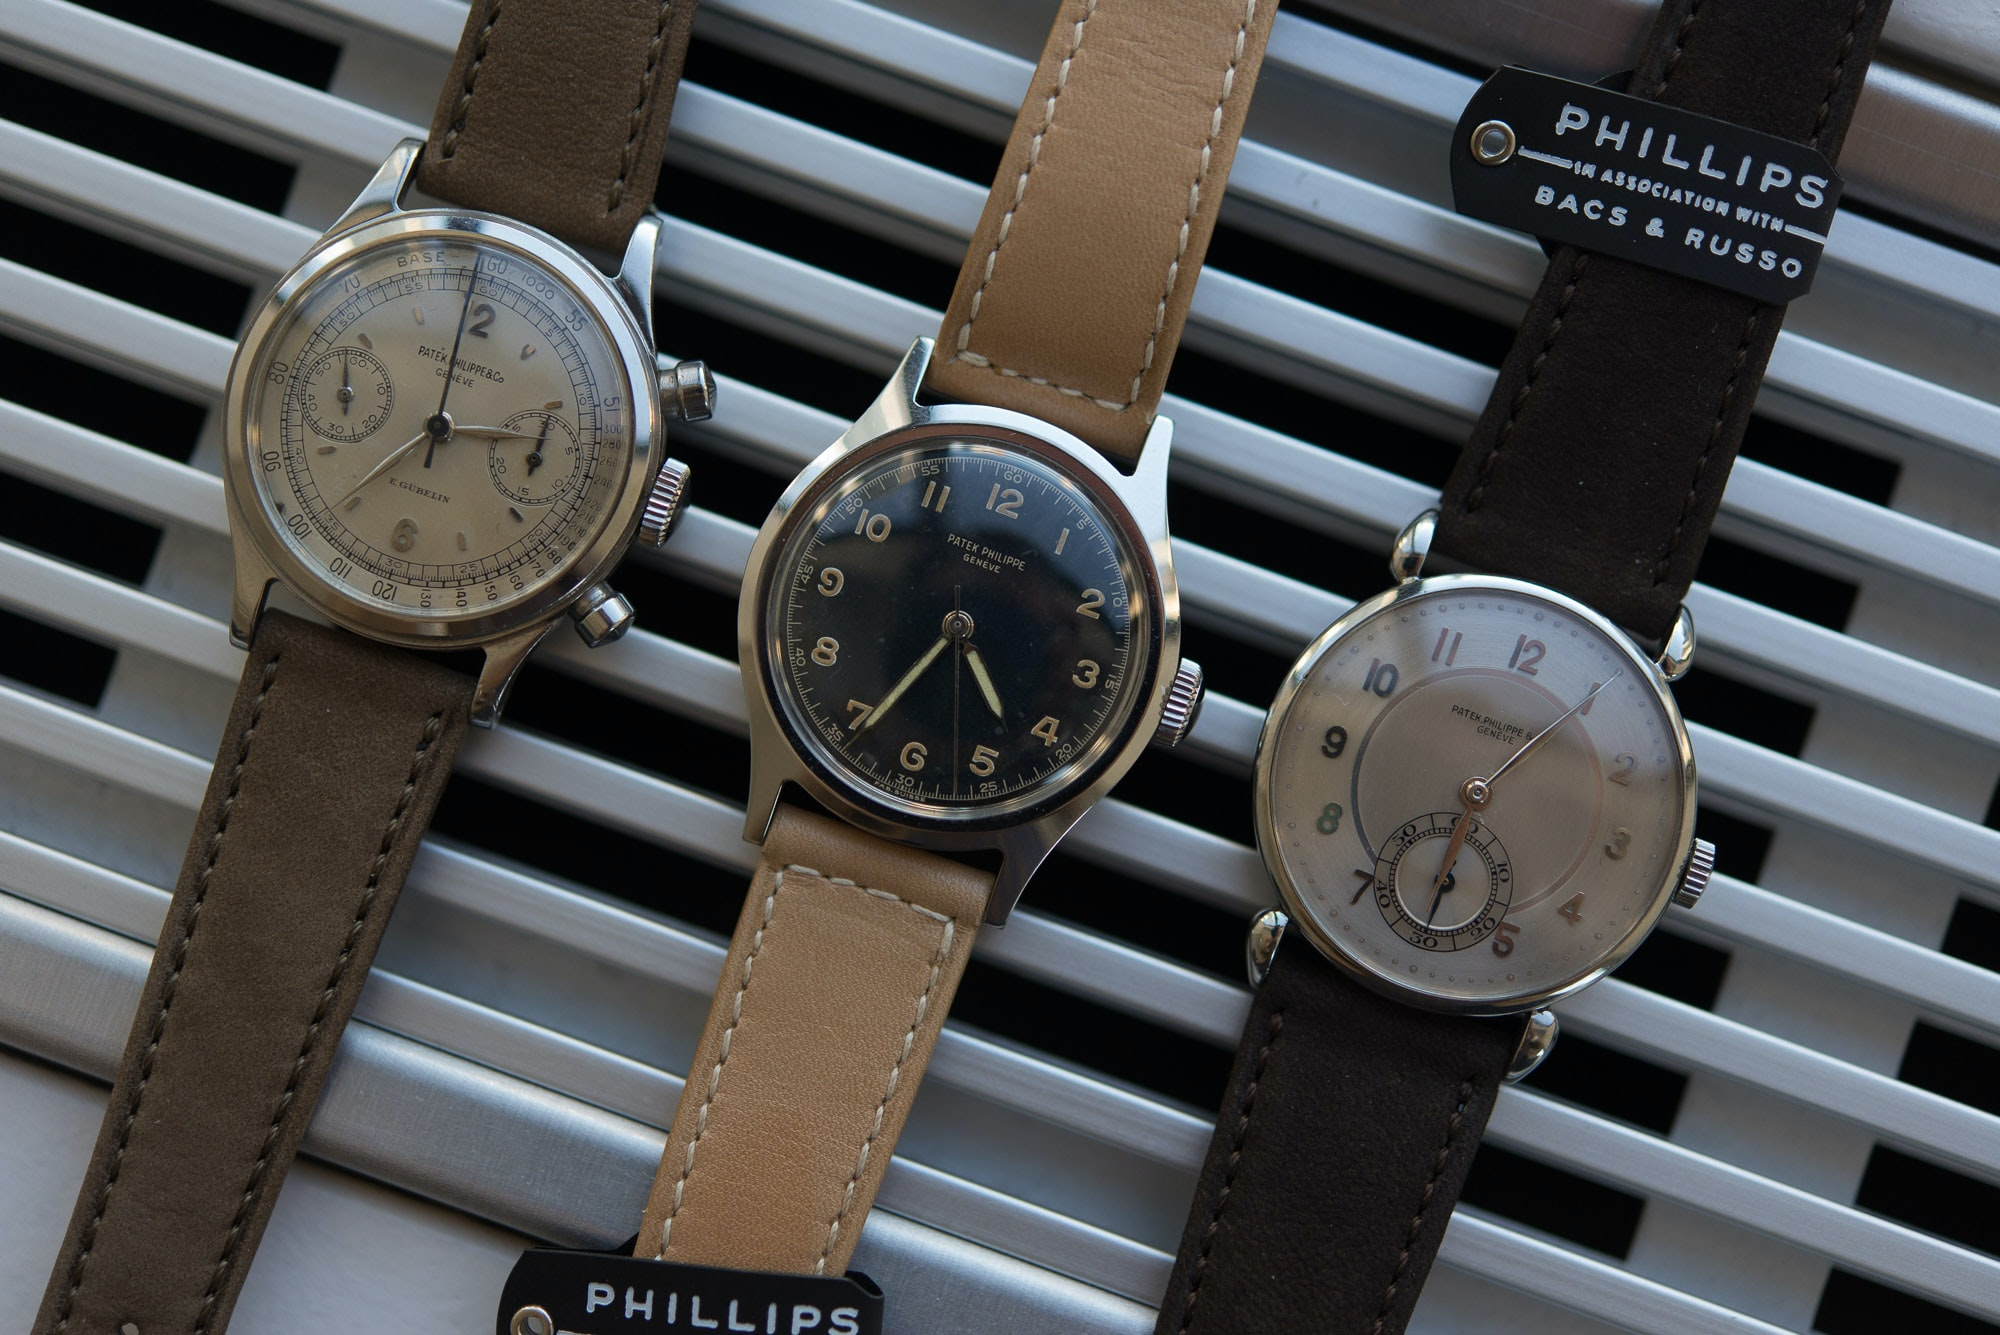 Record-Breaking Patek Philippe 1518 Steals The Show, But Results Show A Mixed Bag At Phillips' Geneva Watch Auction: Four Record-Breaking Patek Philippe 1518 Steals The Show, But Results Show A Mixed Bag At Phillips' Geneva Watch Auction: Four SuperChill 2